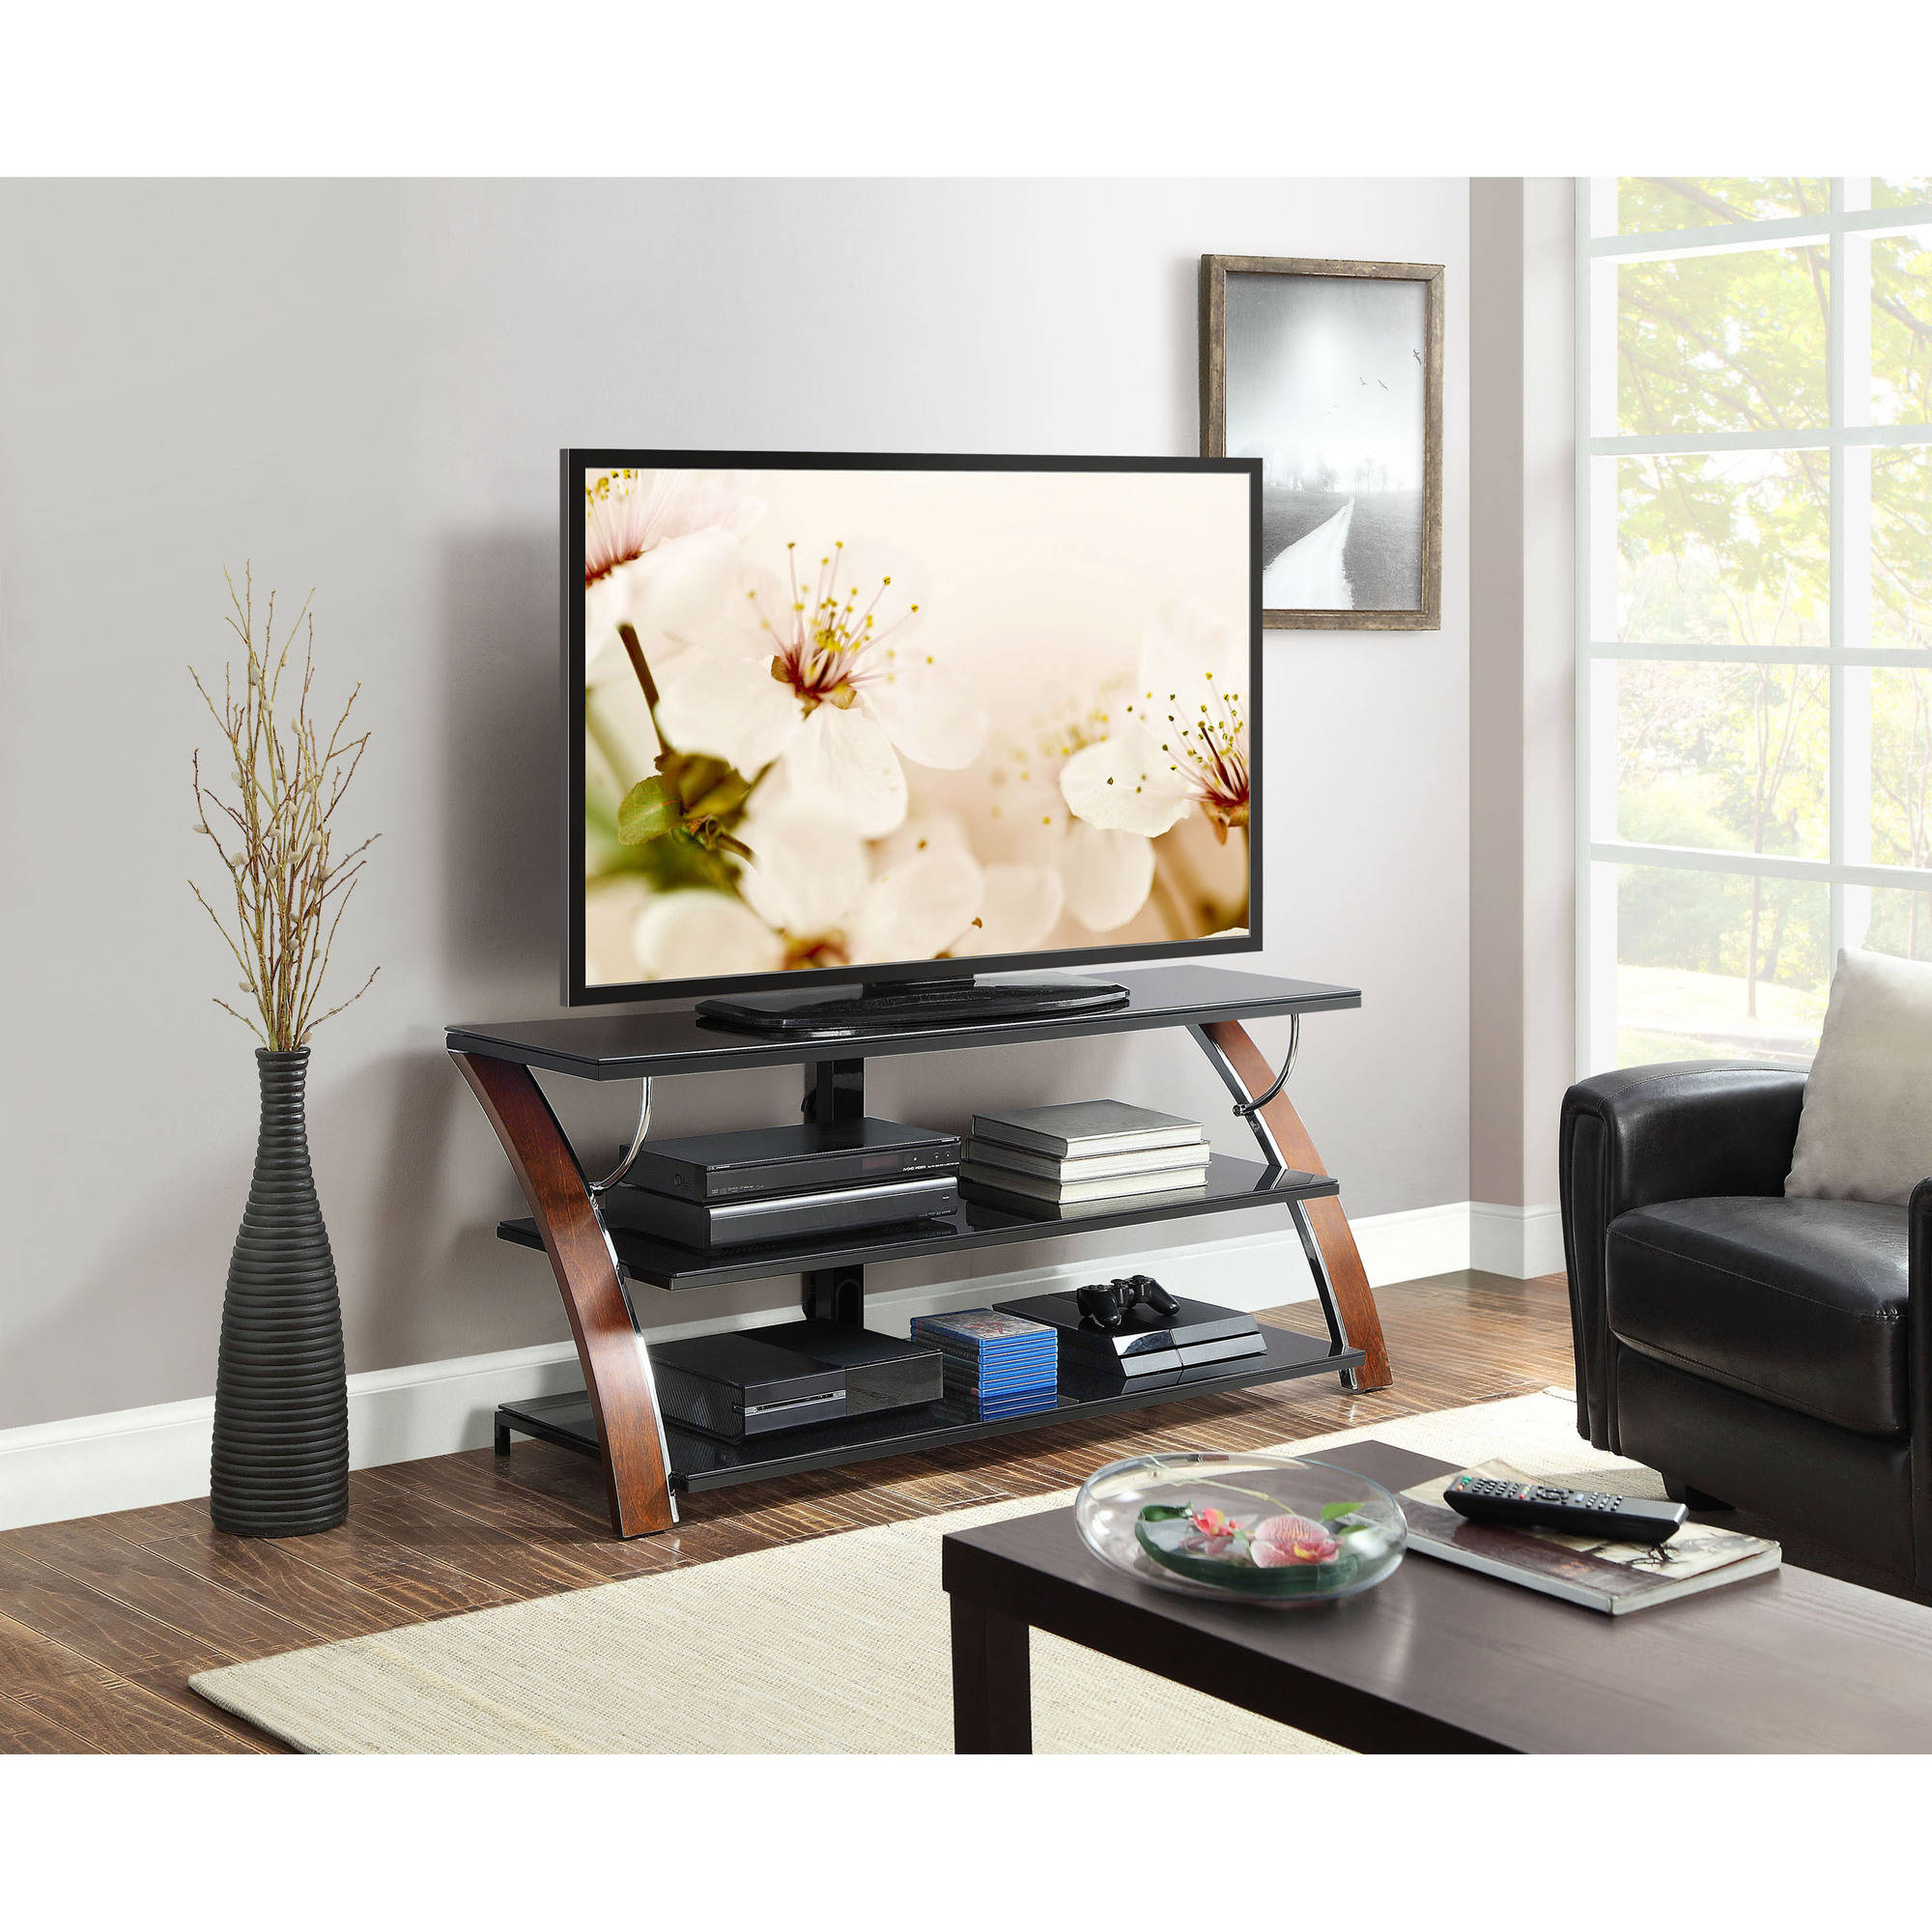 Whalen Payton Brown Cherry 3 In 1 Flat Panel Tv Stand For Tvs Up To For Best And Newest Modern Glass Tv Stands (View 18 of 20)